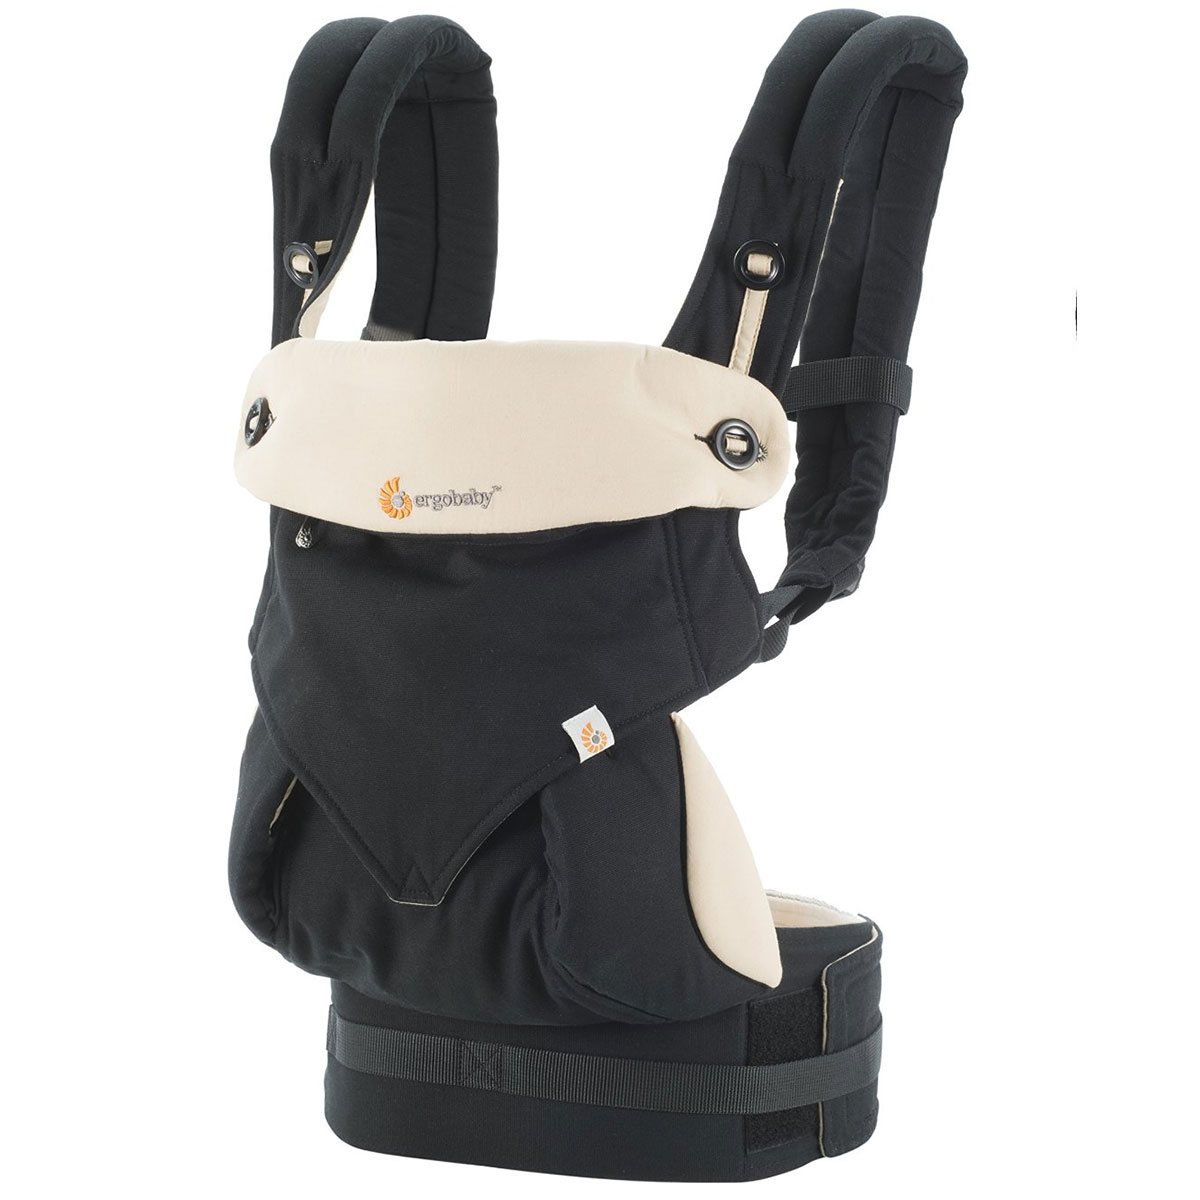 New Ergo 360 Baby Four Position carrier Dusty gray Infant Insert